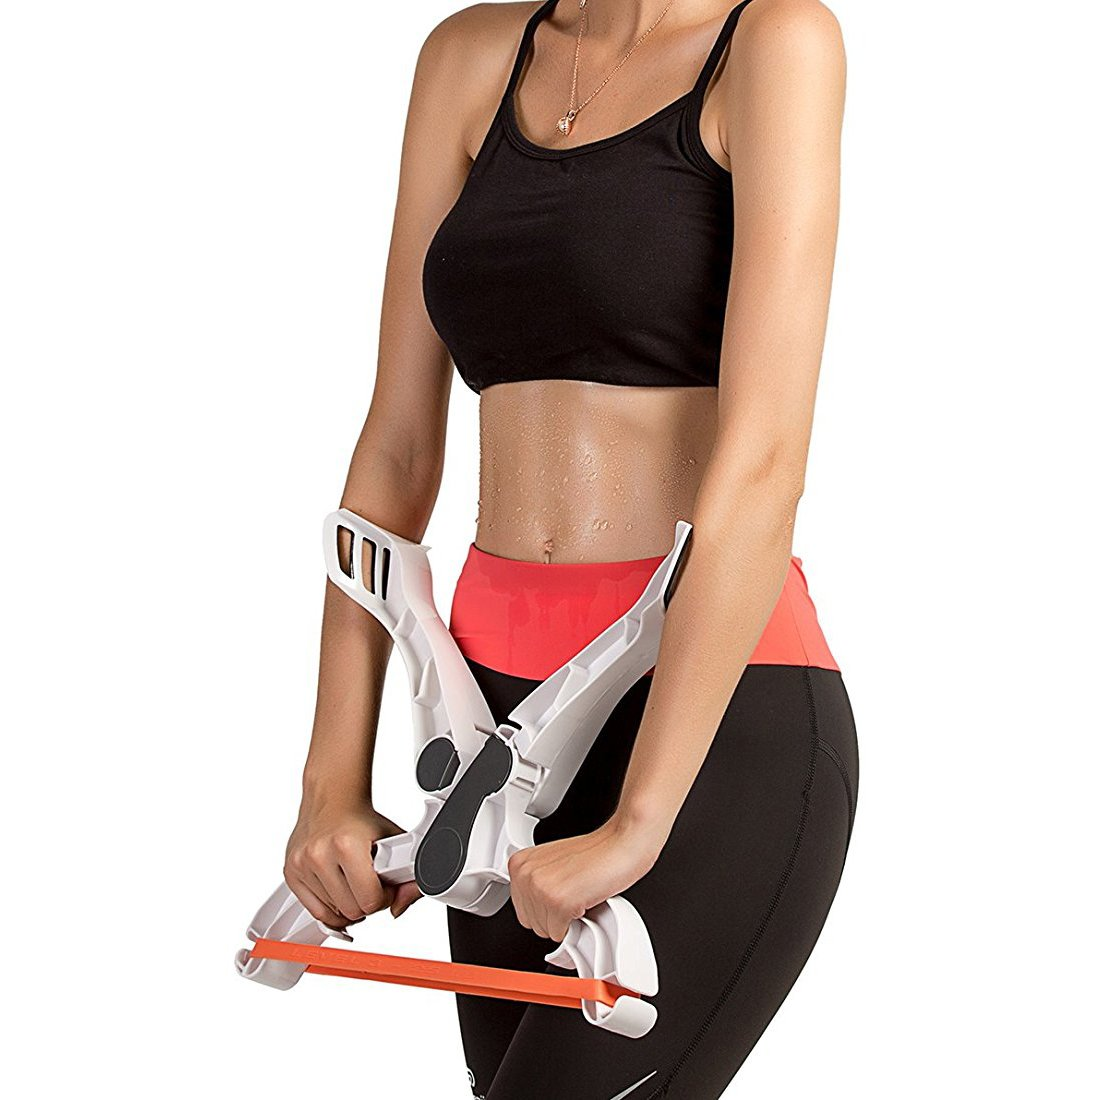 LYUS Arm Exerciser Workout Machine, Upper Arm Training Exerciser Force Strength Fitness Equipment with System 3 Resistance Training Bands for Women by LYUS